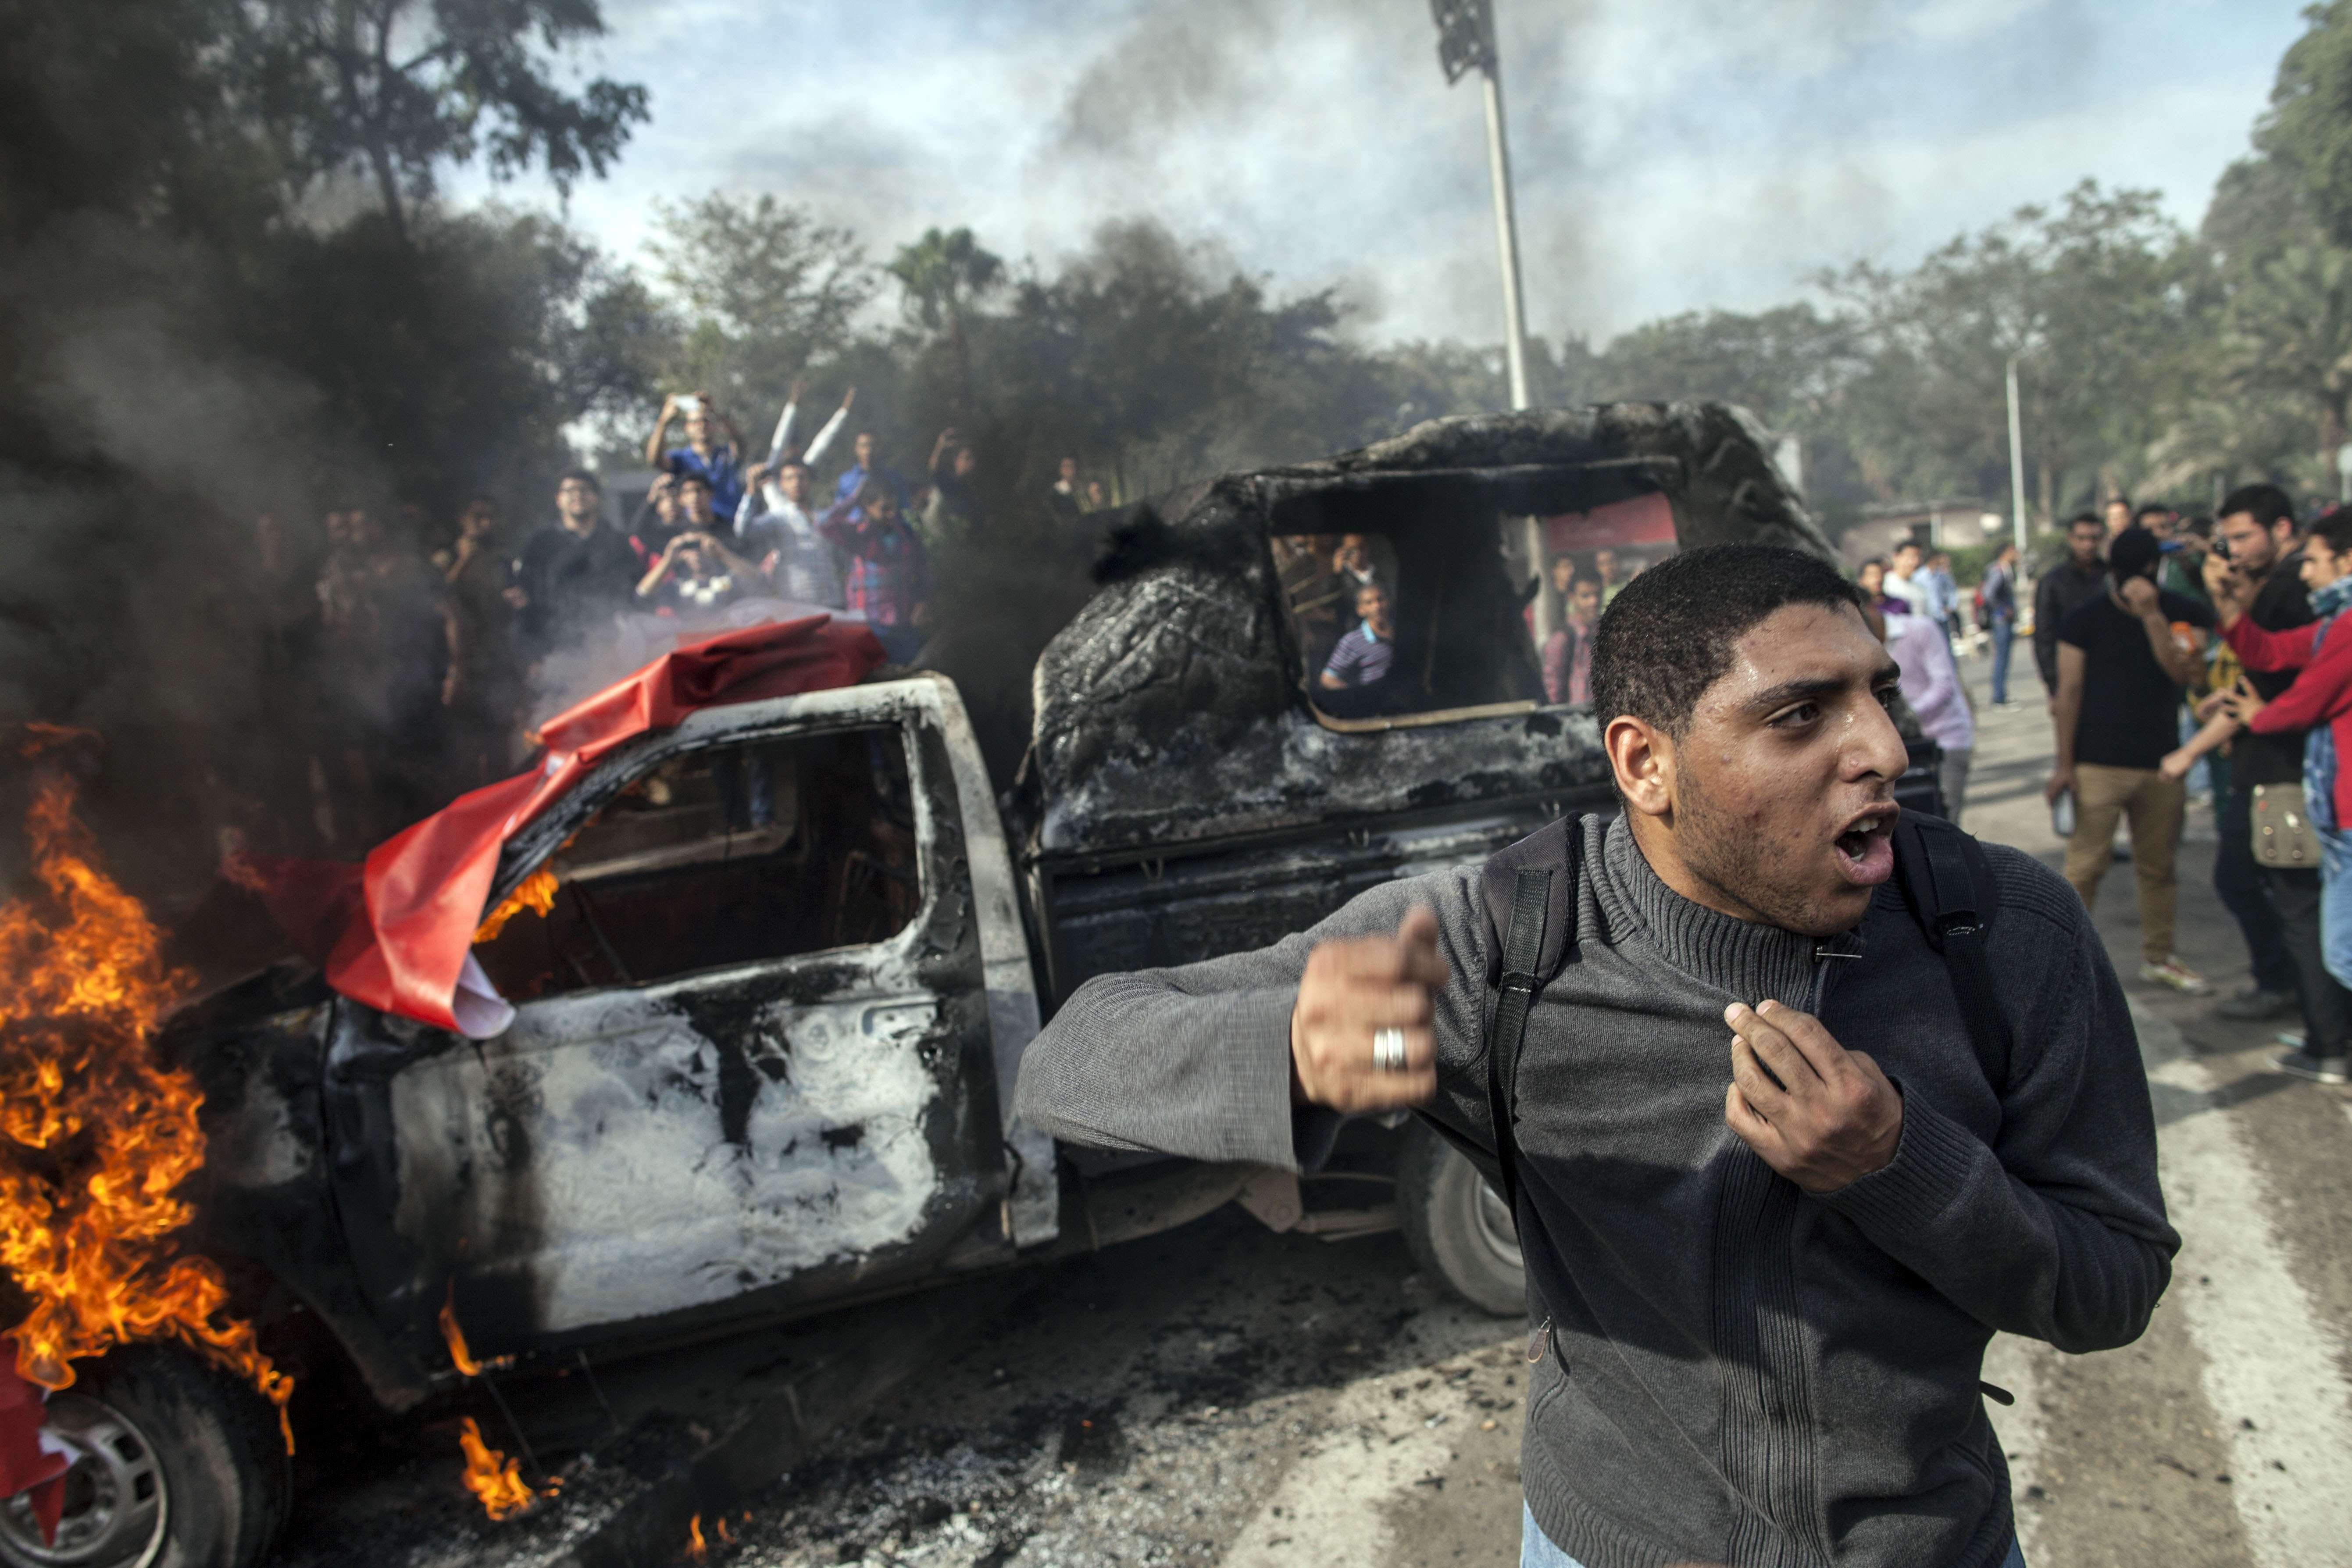 An Egyptian student at Cairo's University stands in front of a police vehicle burning on December 1, 2013 during a demonstration in support of a felow engineering student who was killed the previous week during clashes with Egyptian security forces in an Islamist demonstration. ( AFP PHOTO/MAHMOUD KHALED)